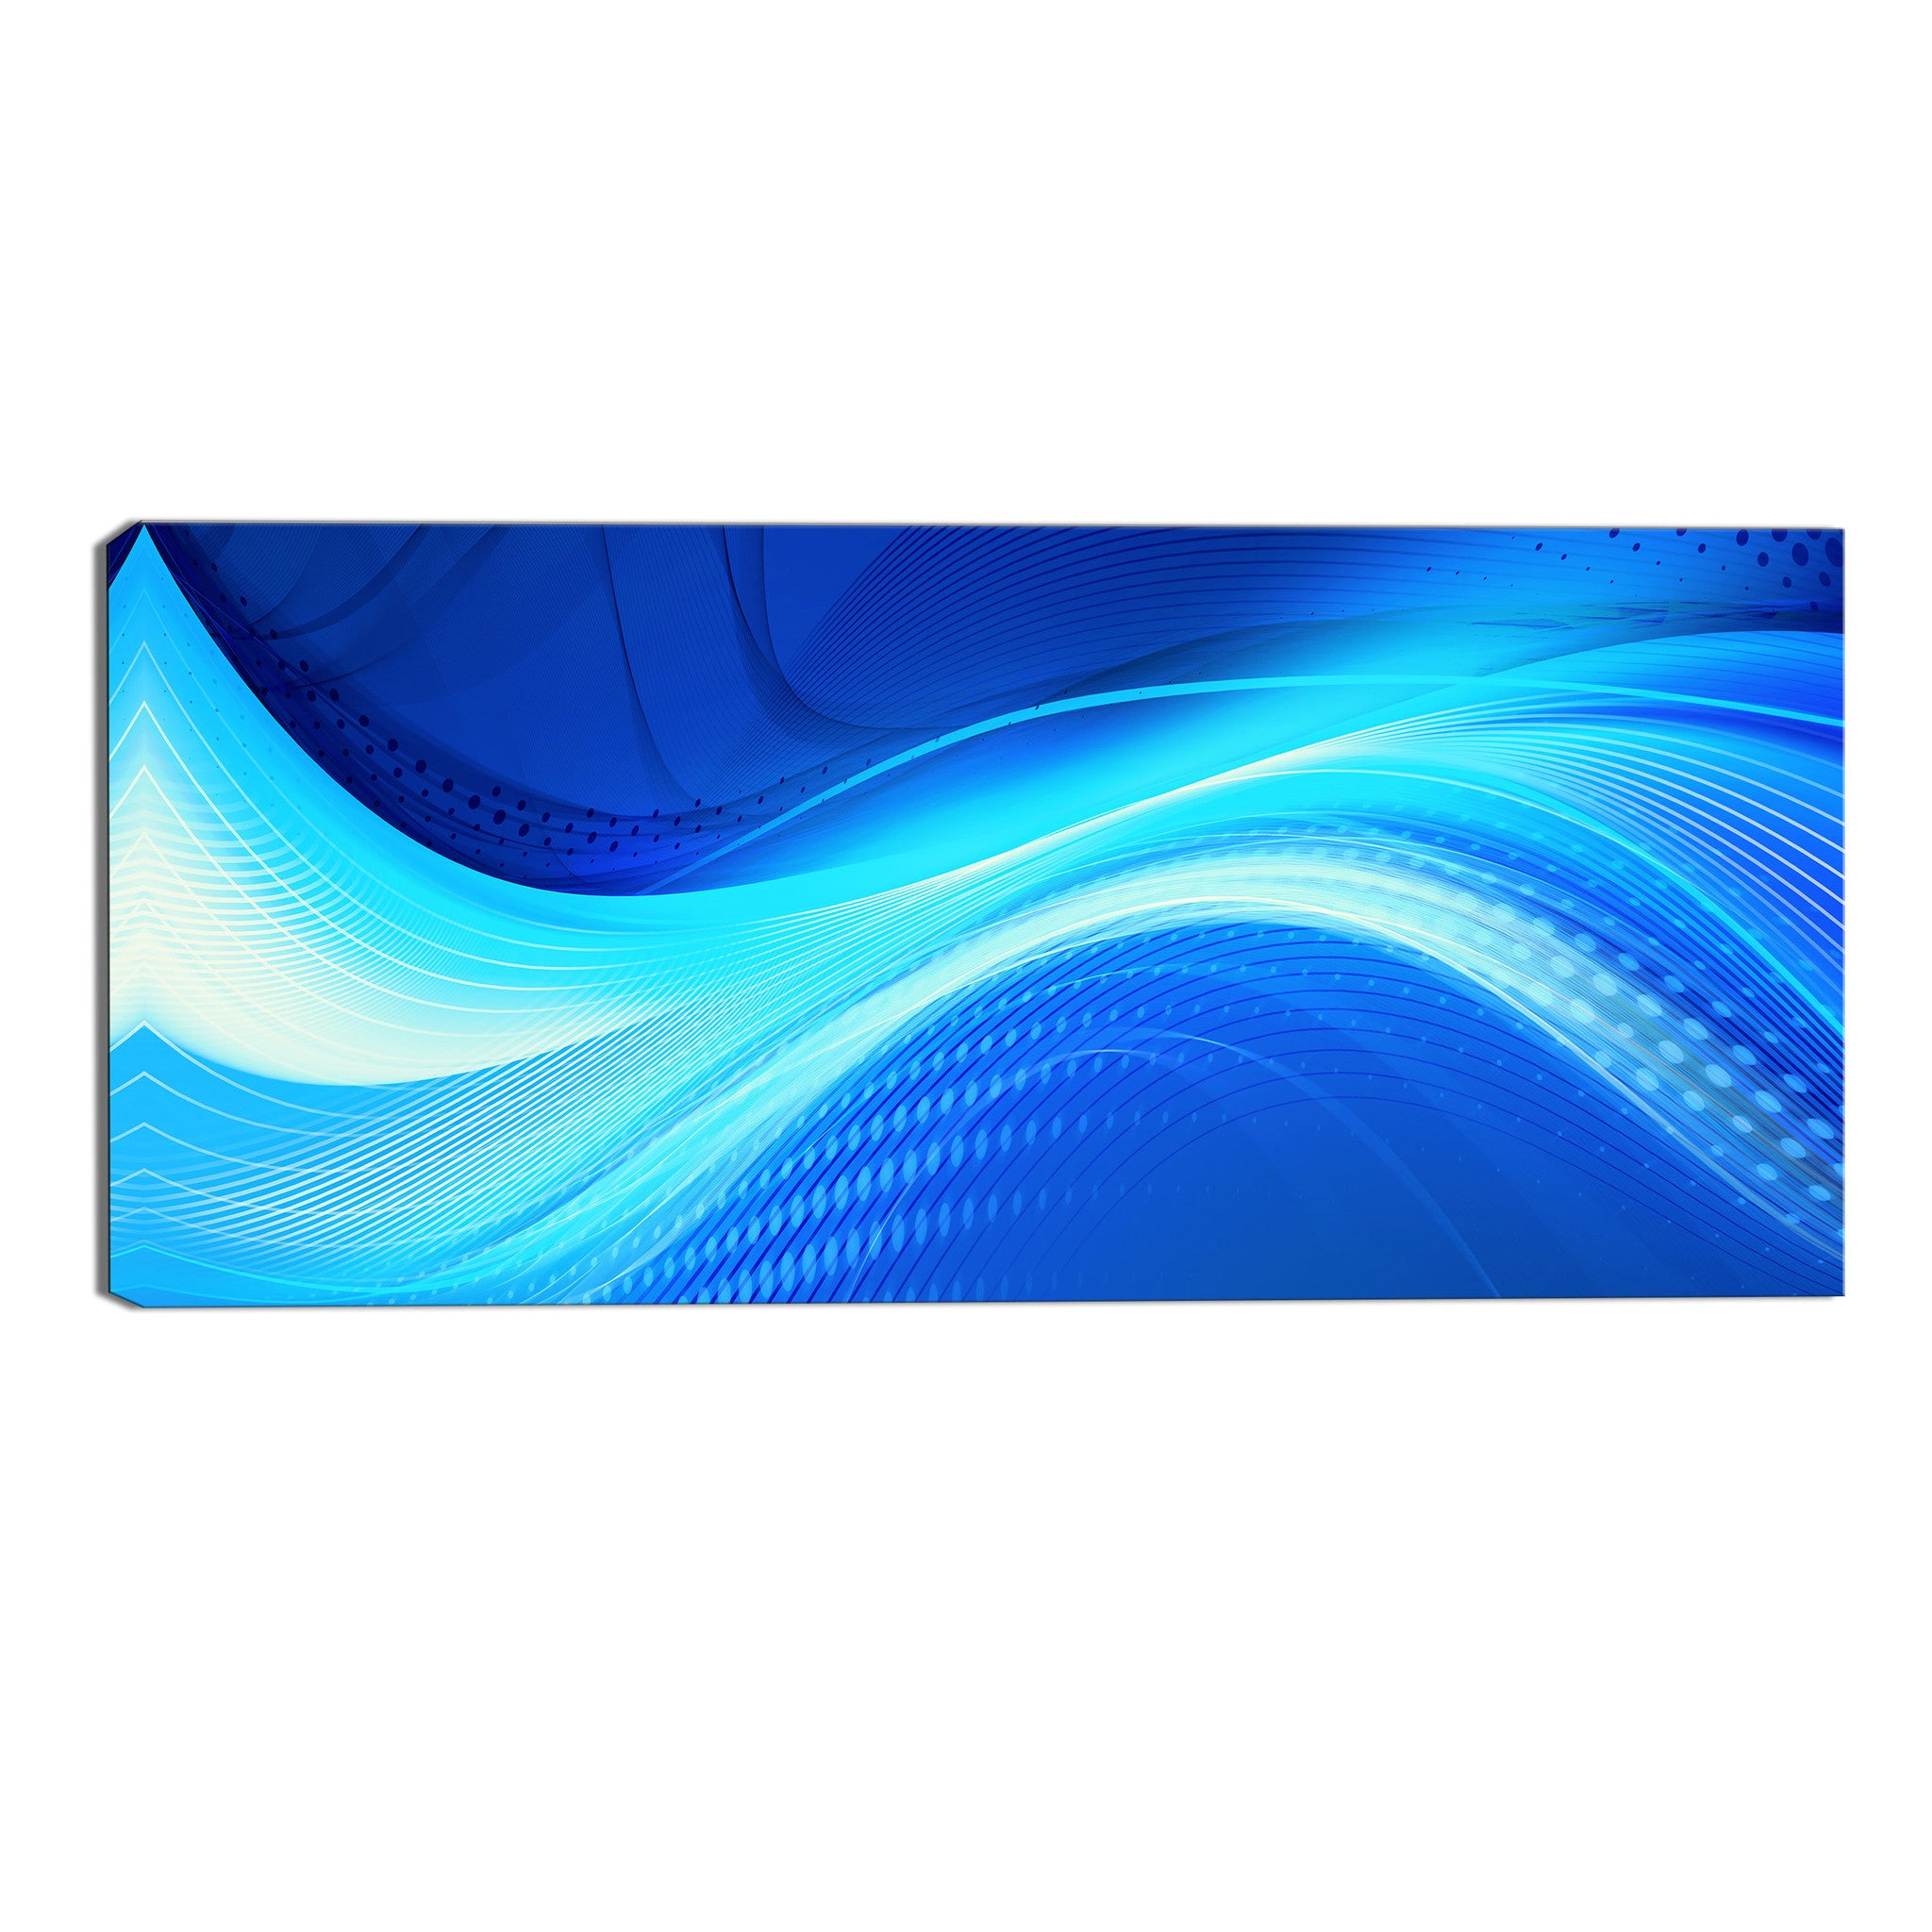 Blue Accents Canvas Abstract Wall Art Print